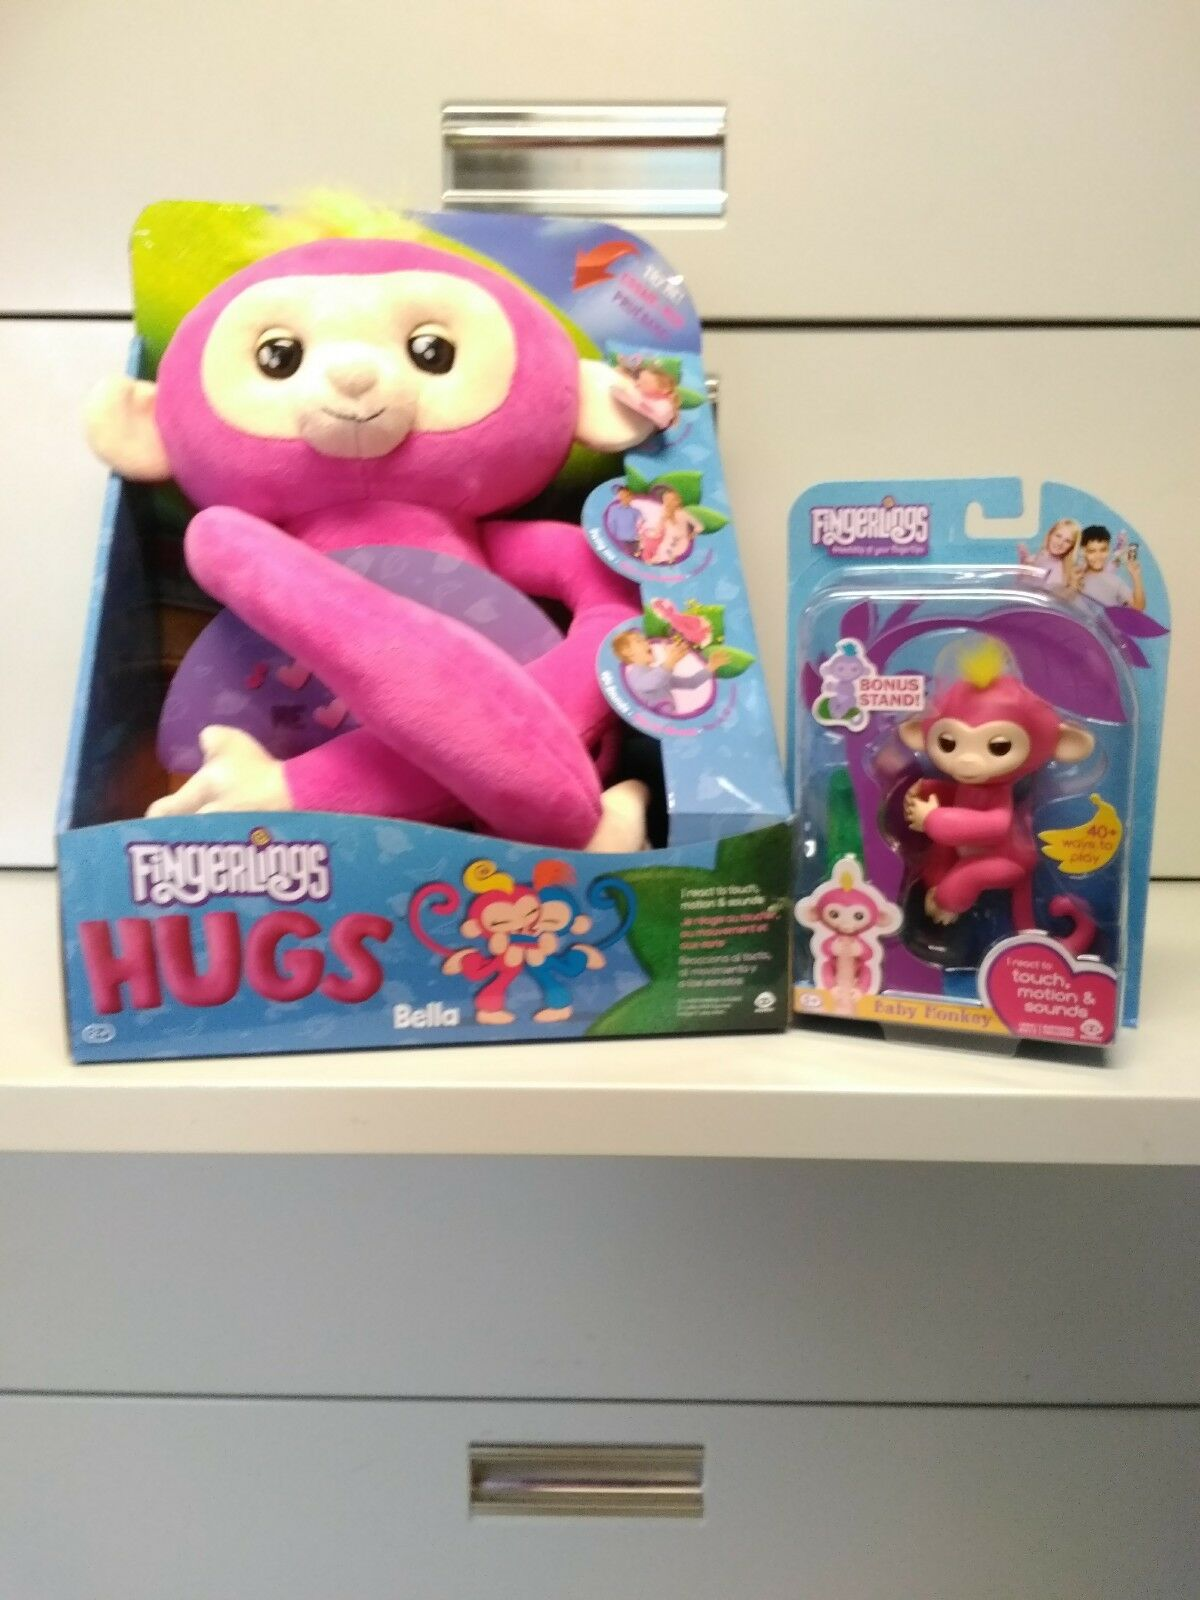 Menge   neue wowwee fingerlings hugs baby - äffchen  bella  (Rosa) und fingerlings bella